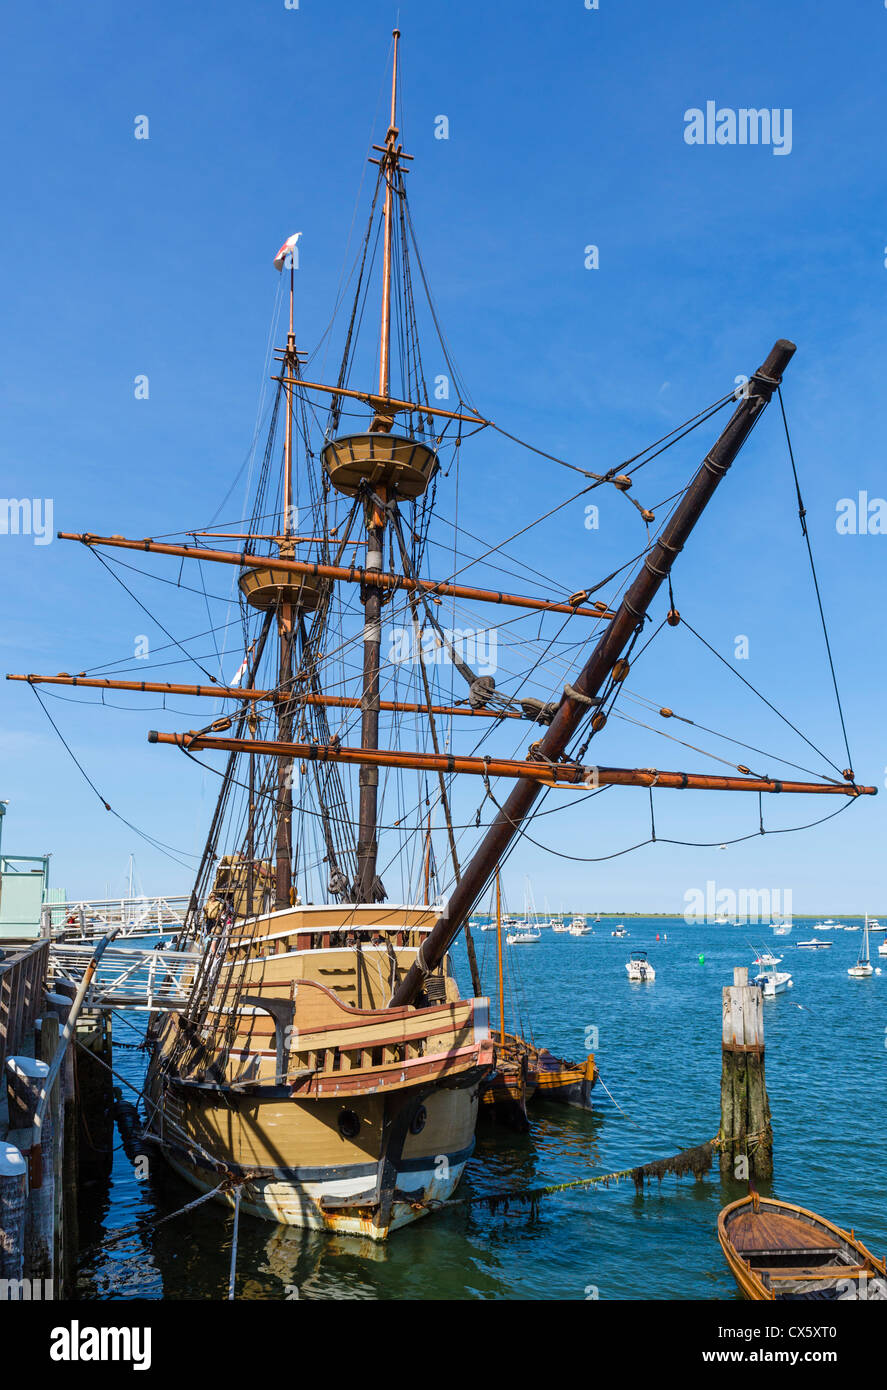 Die Mayflower II, eine Nachbildung des ursprünglichen Mayflower, State Pier, Plymouth, Massachusetts, USA Stockfoto